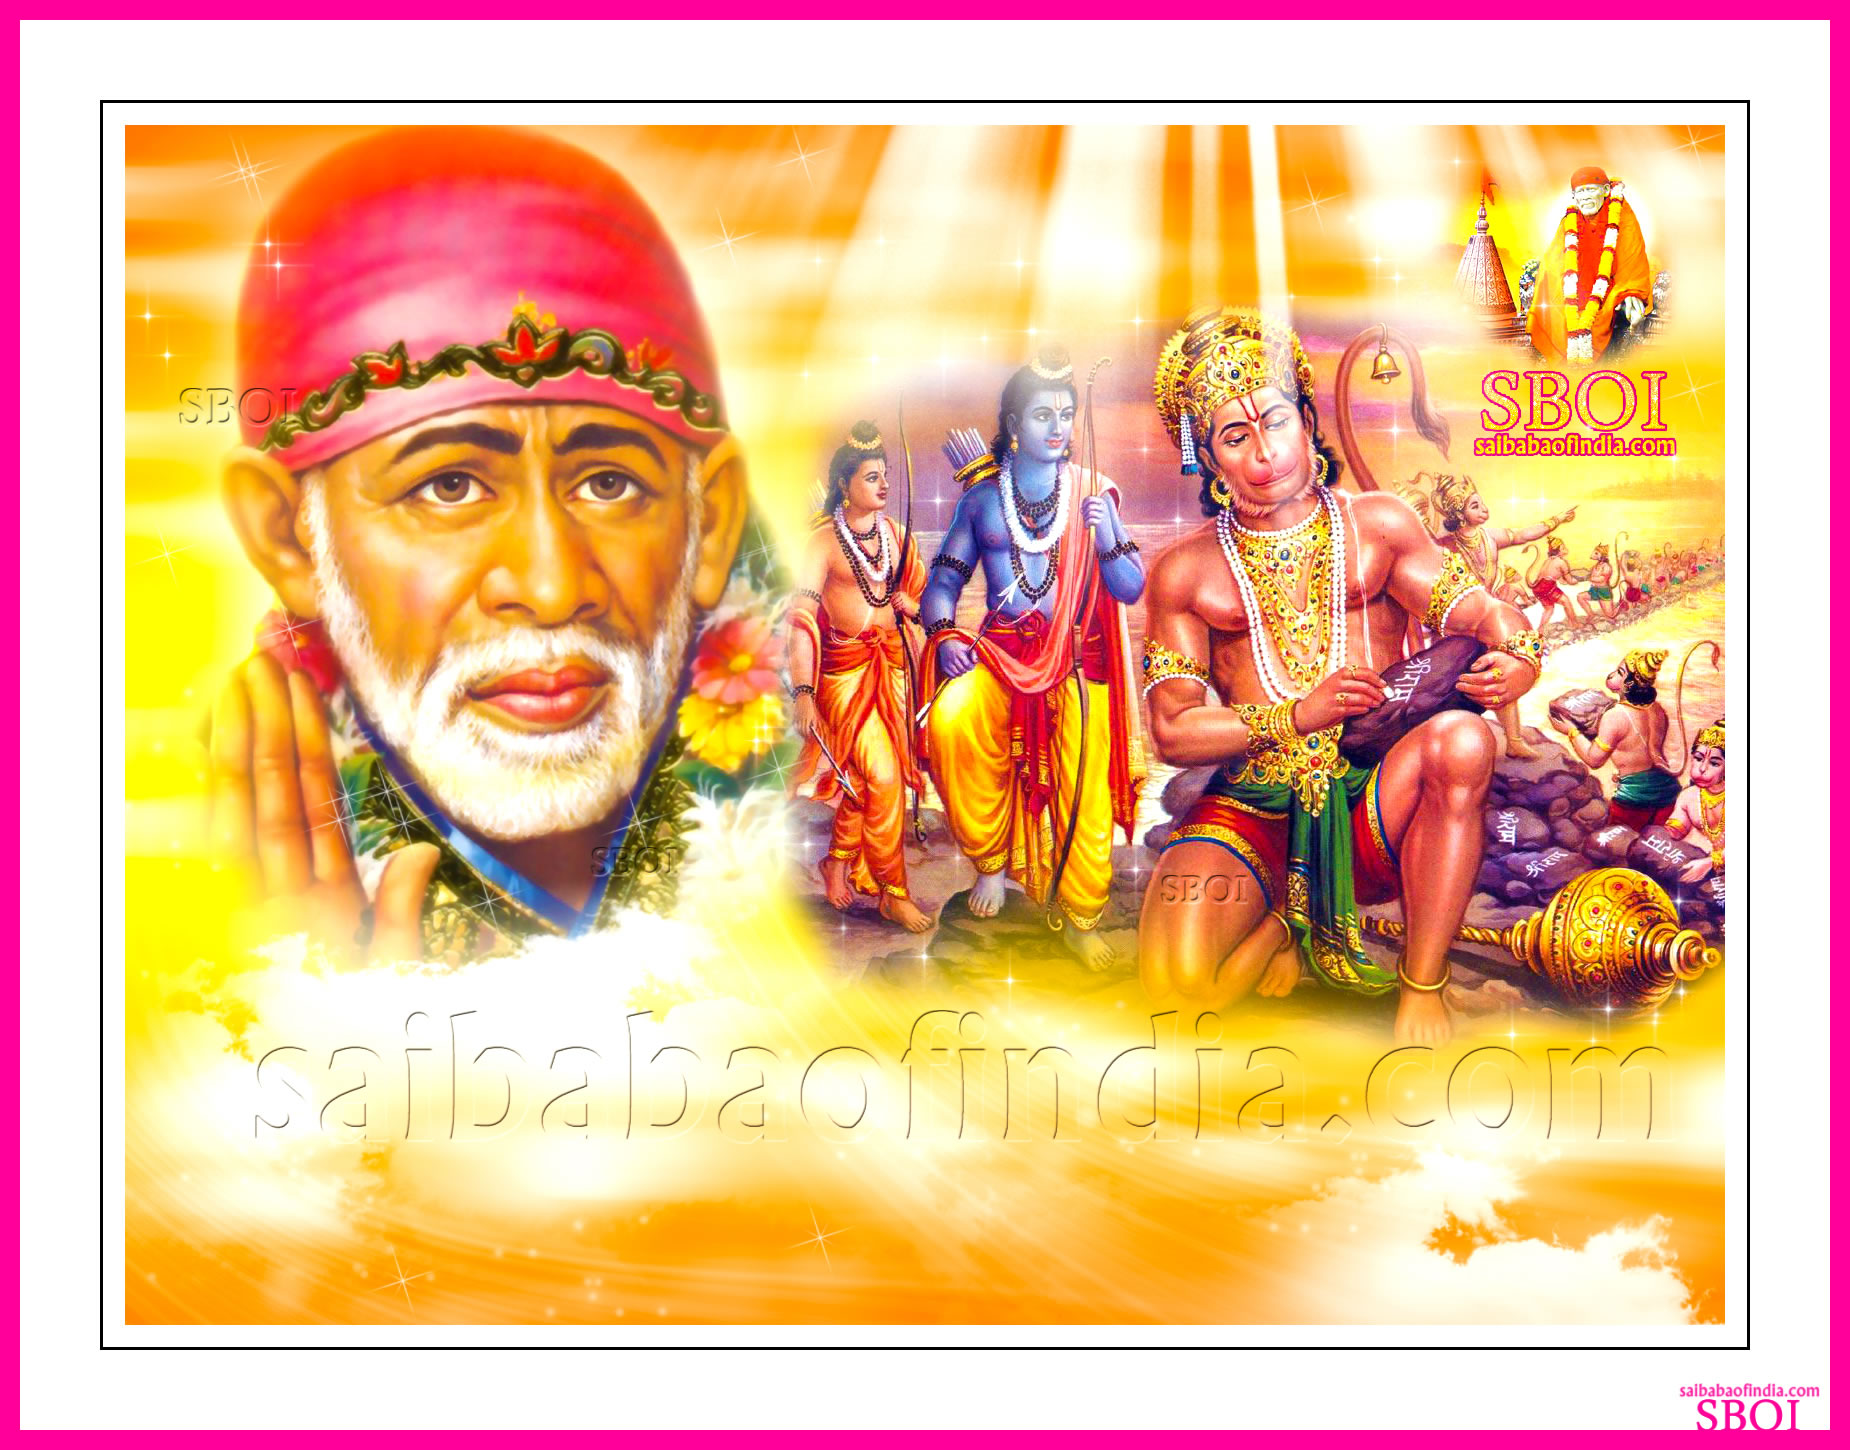 wallpaper-sri-ramanavami-shirdi-sai-baba-of-india-sboi